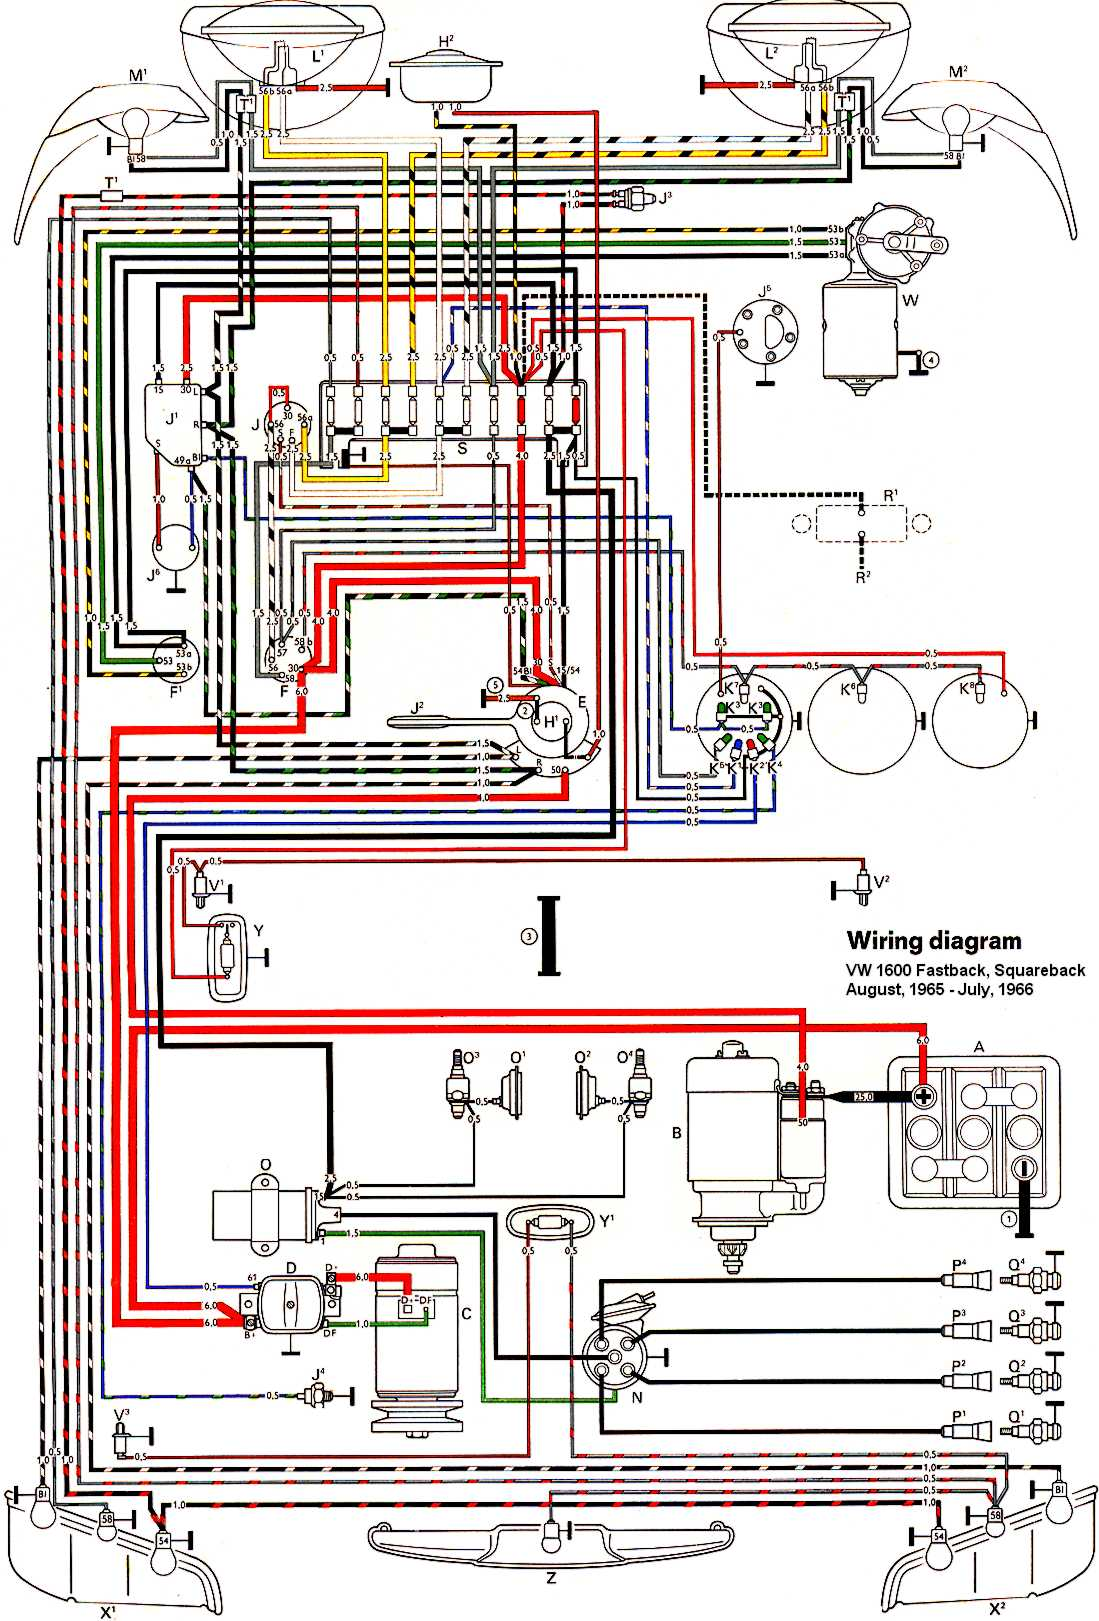 65 vw bug wiring harness wiring data 1969 vw beetle light switch wiring diagram wiring harness 1998 volkswagen beetle door wiring harness 65 vw bug wiring harness